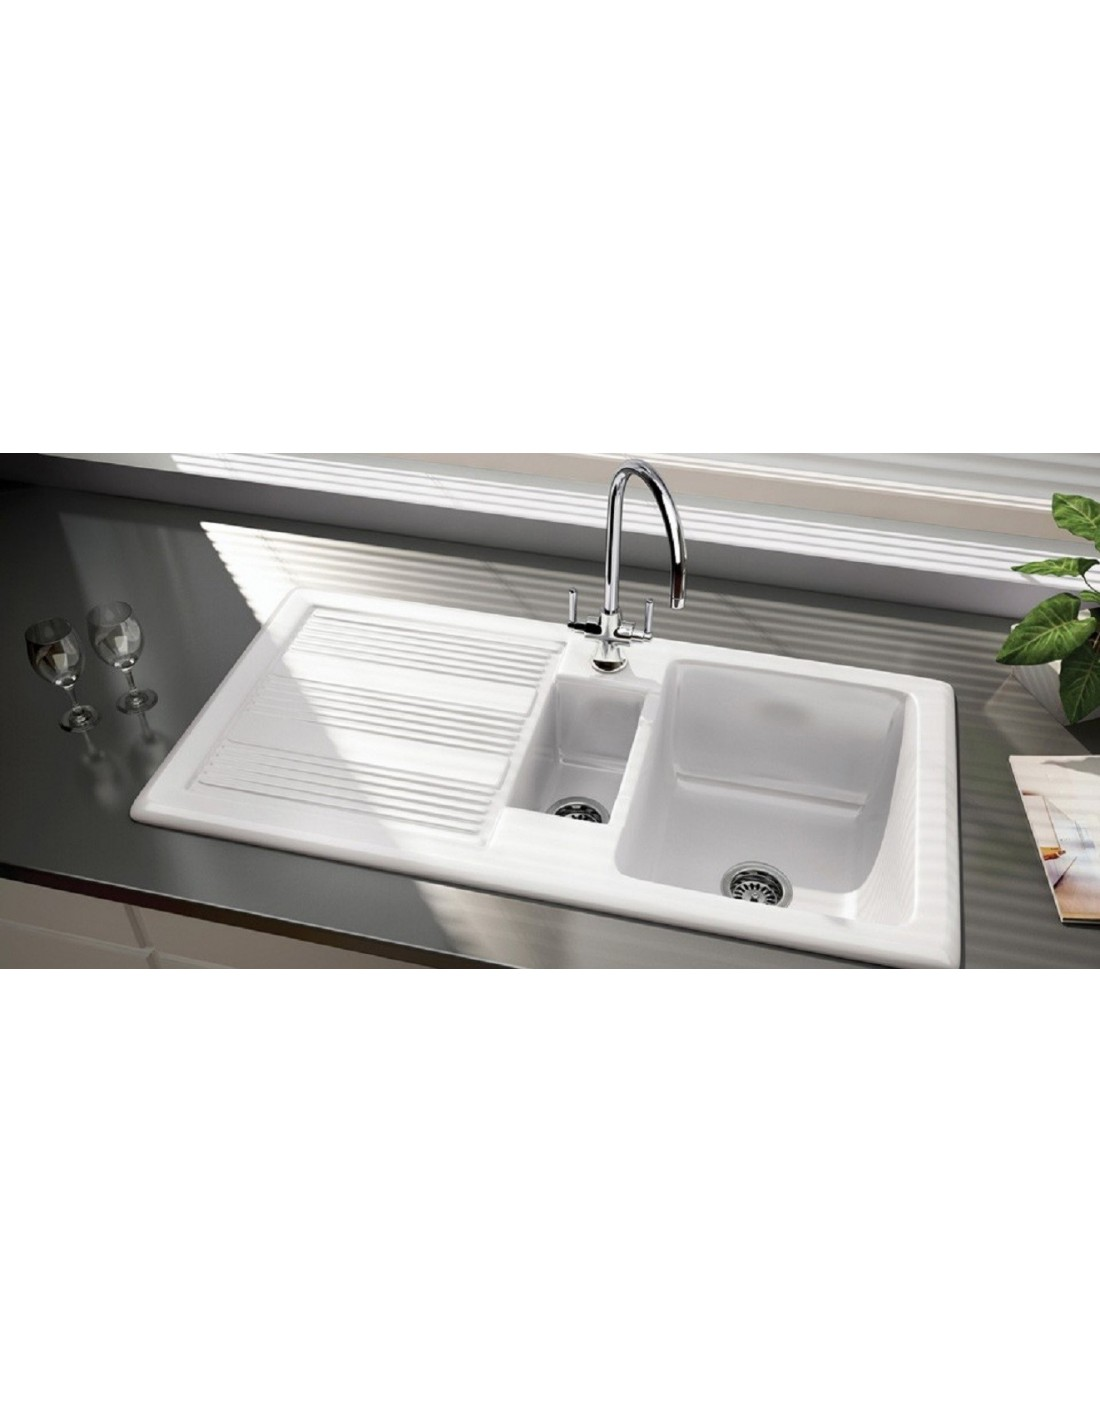 Rangemaster Ceramic Portland 1 5 Bowl Sink Gloss White Includes Waste Kit